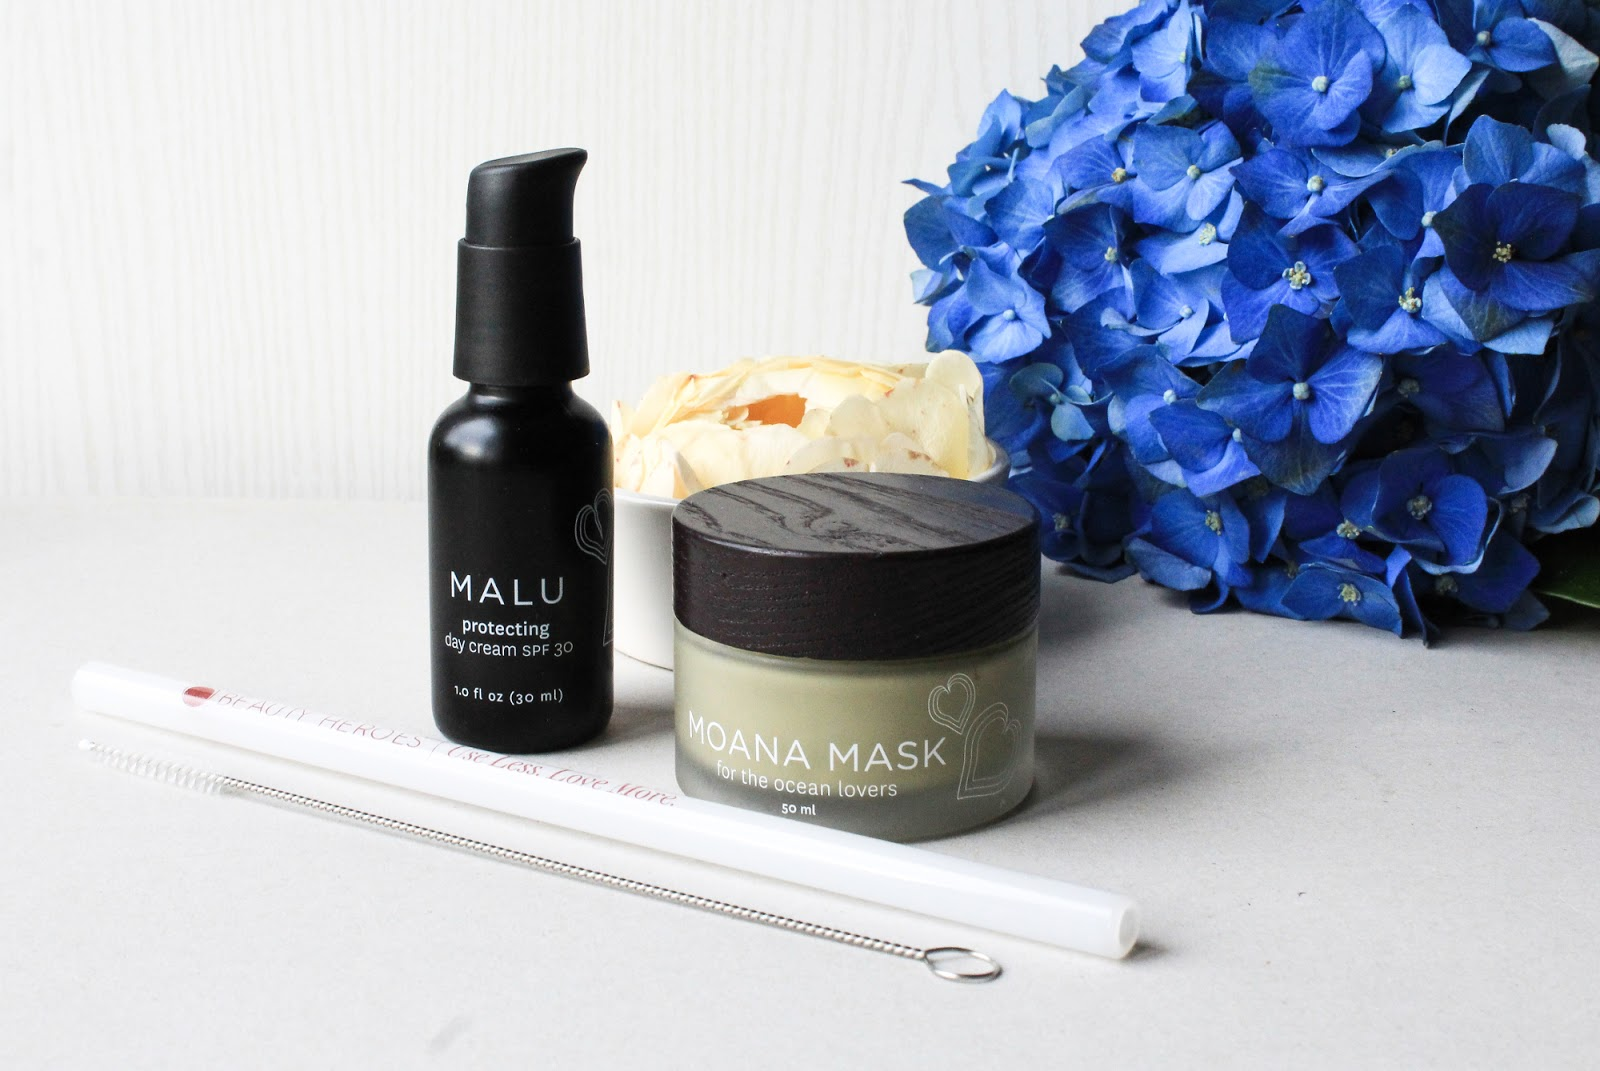 Beauty Heroes June Beauty Discovery 2018 Honua Skincare Malu Protecting Day Cream SPF 30, Moana Mask - For the Ocean Lover, Beauty Heroes Glass Straw.